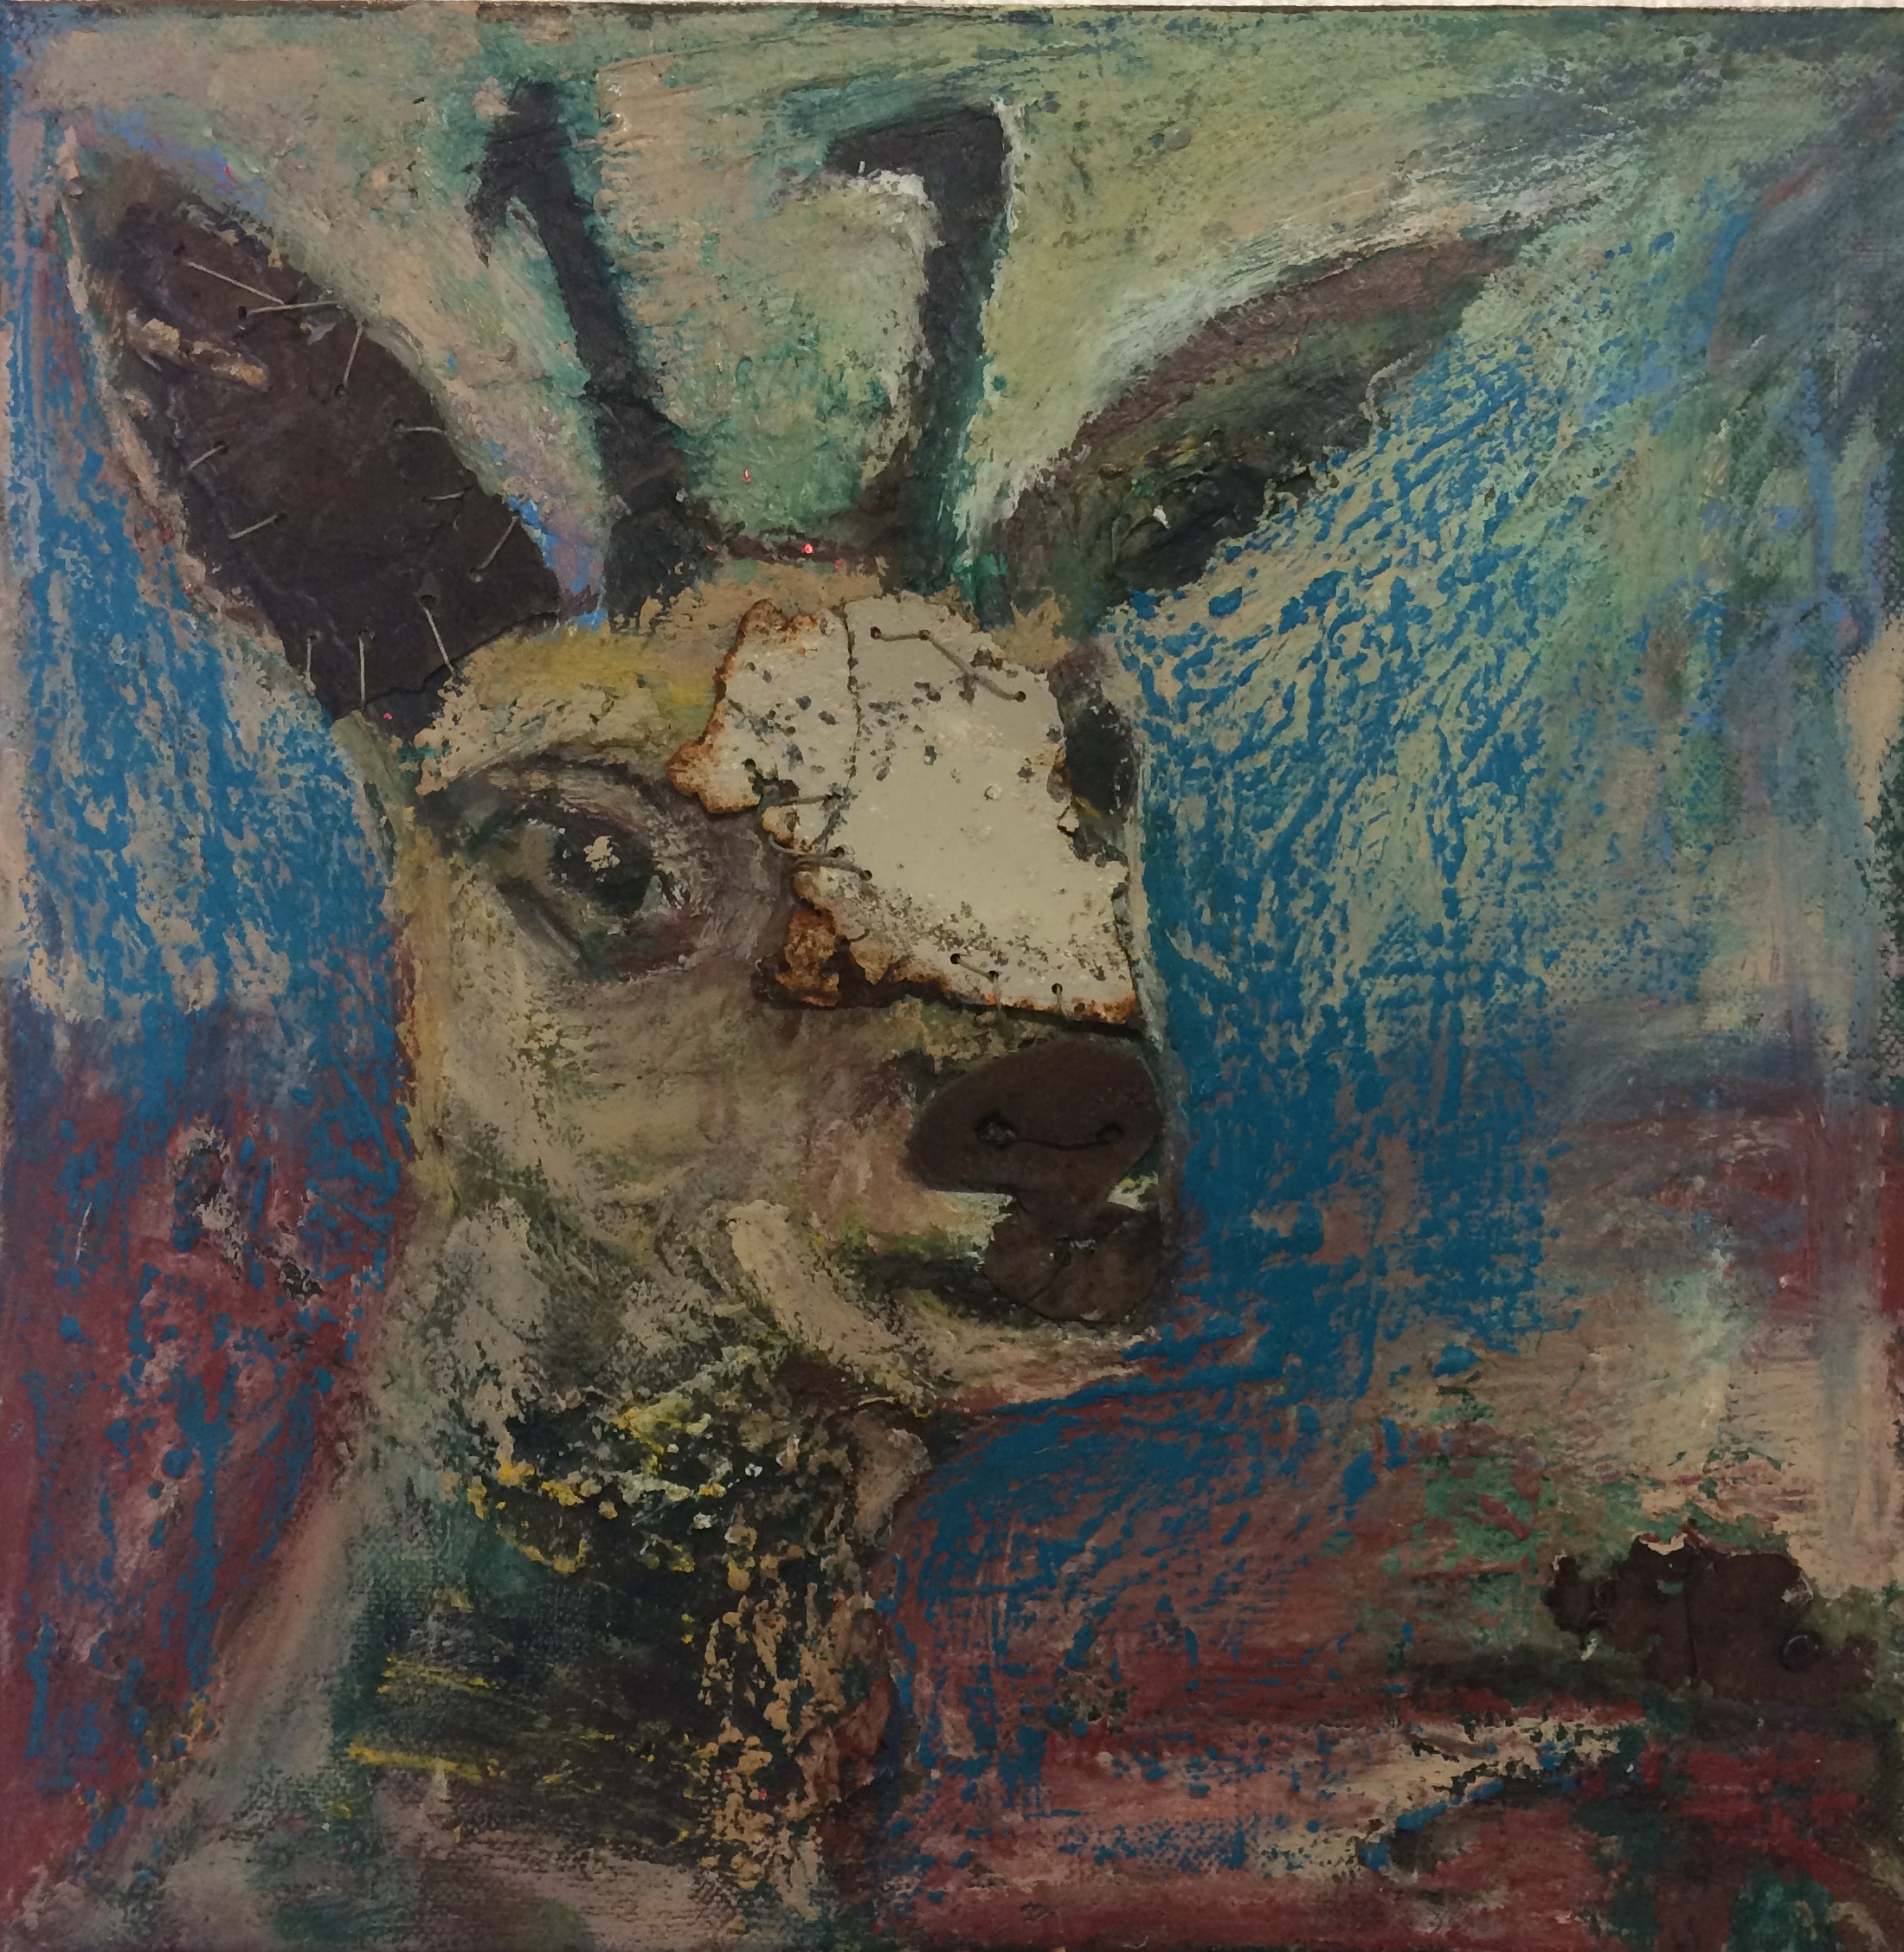 Caroline goat oil & mixed media on canvbas 31 x 31cm